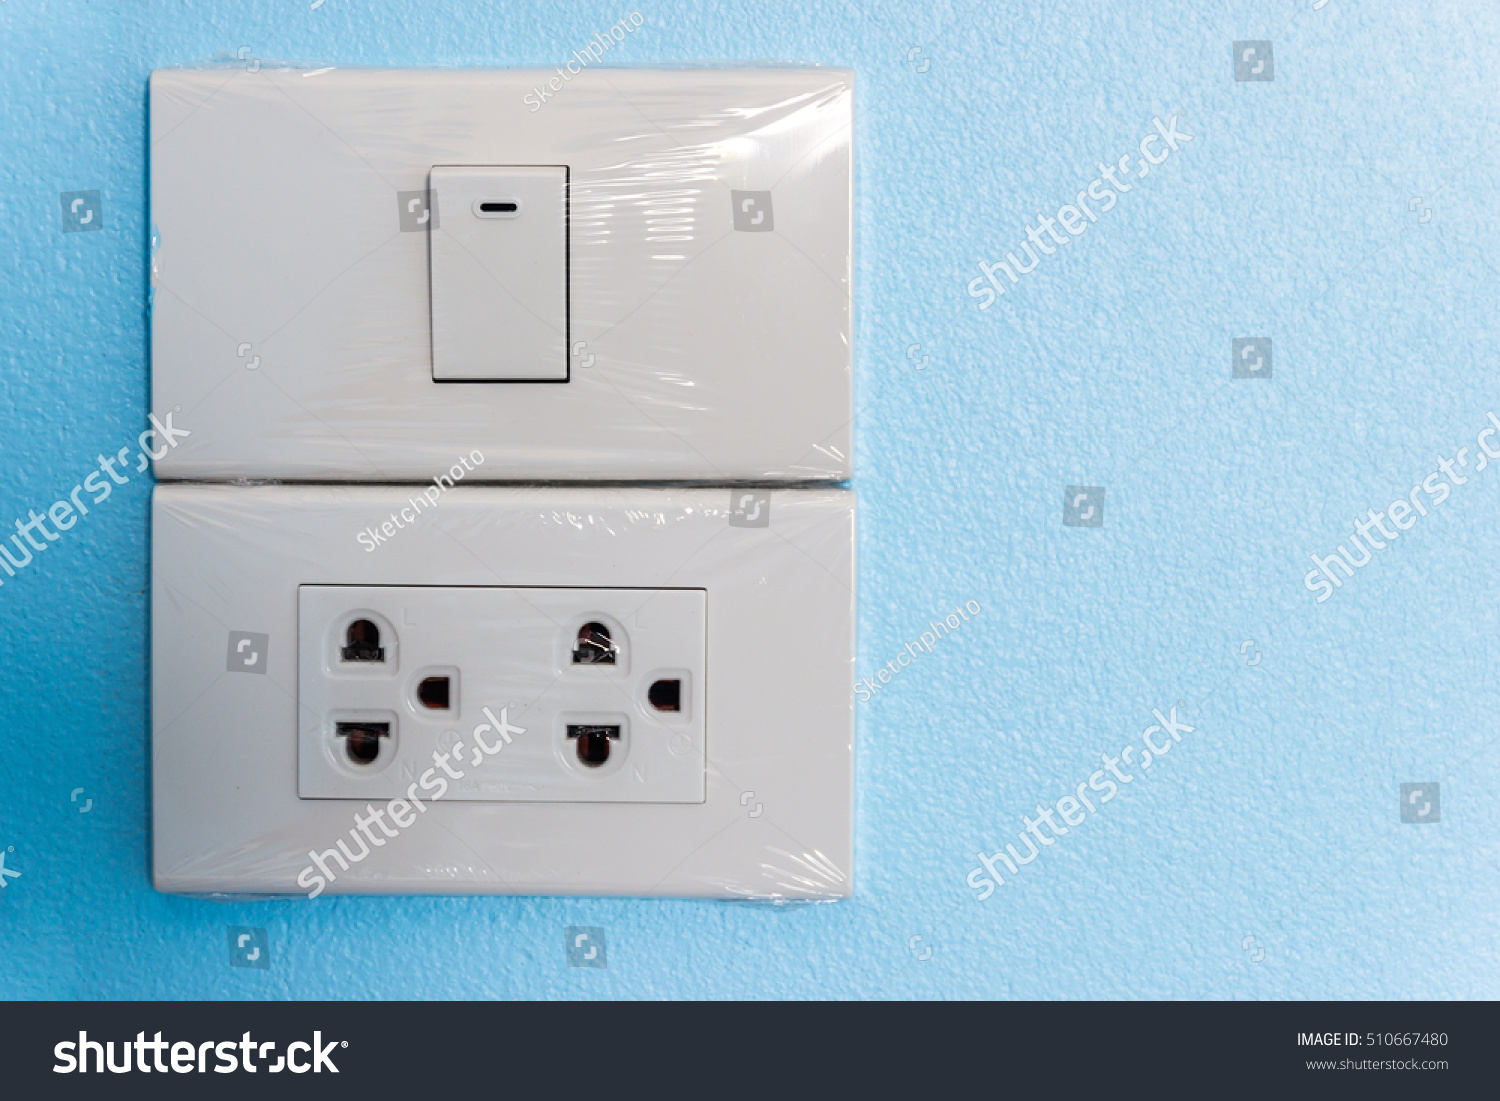 Industry Building Construction Home Electrical Switch Stock Photo ...